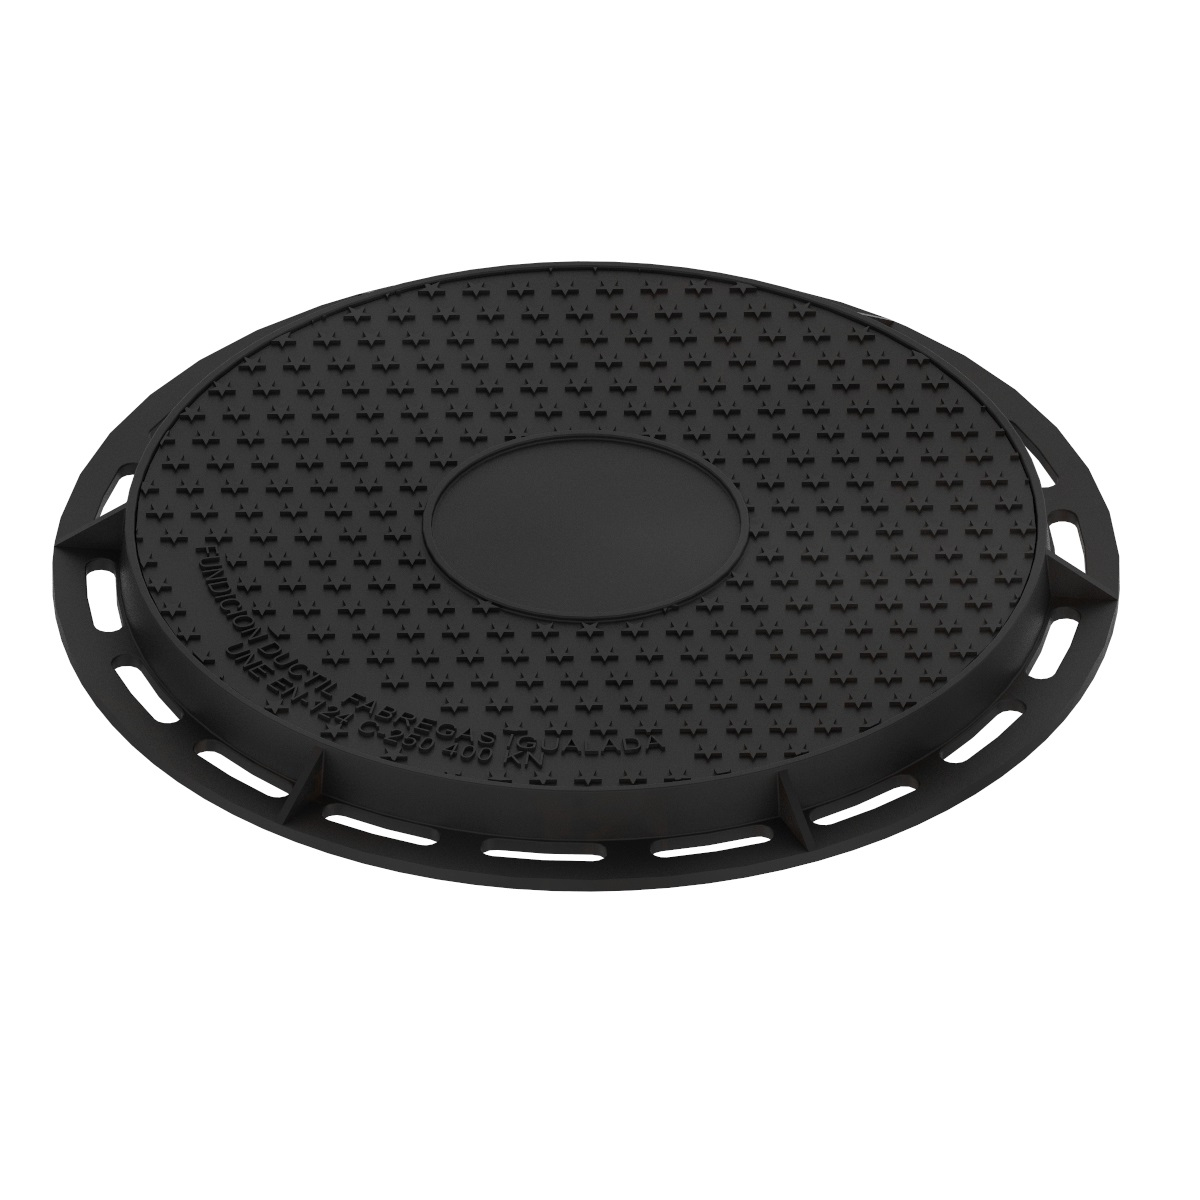 Circular Manhole cover and ring of registry ductile casting B-7DU400